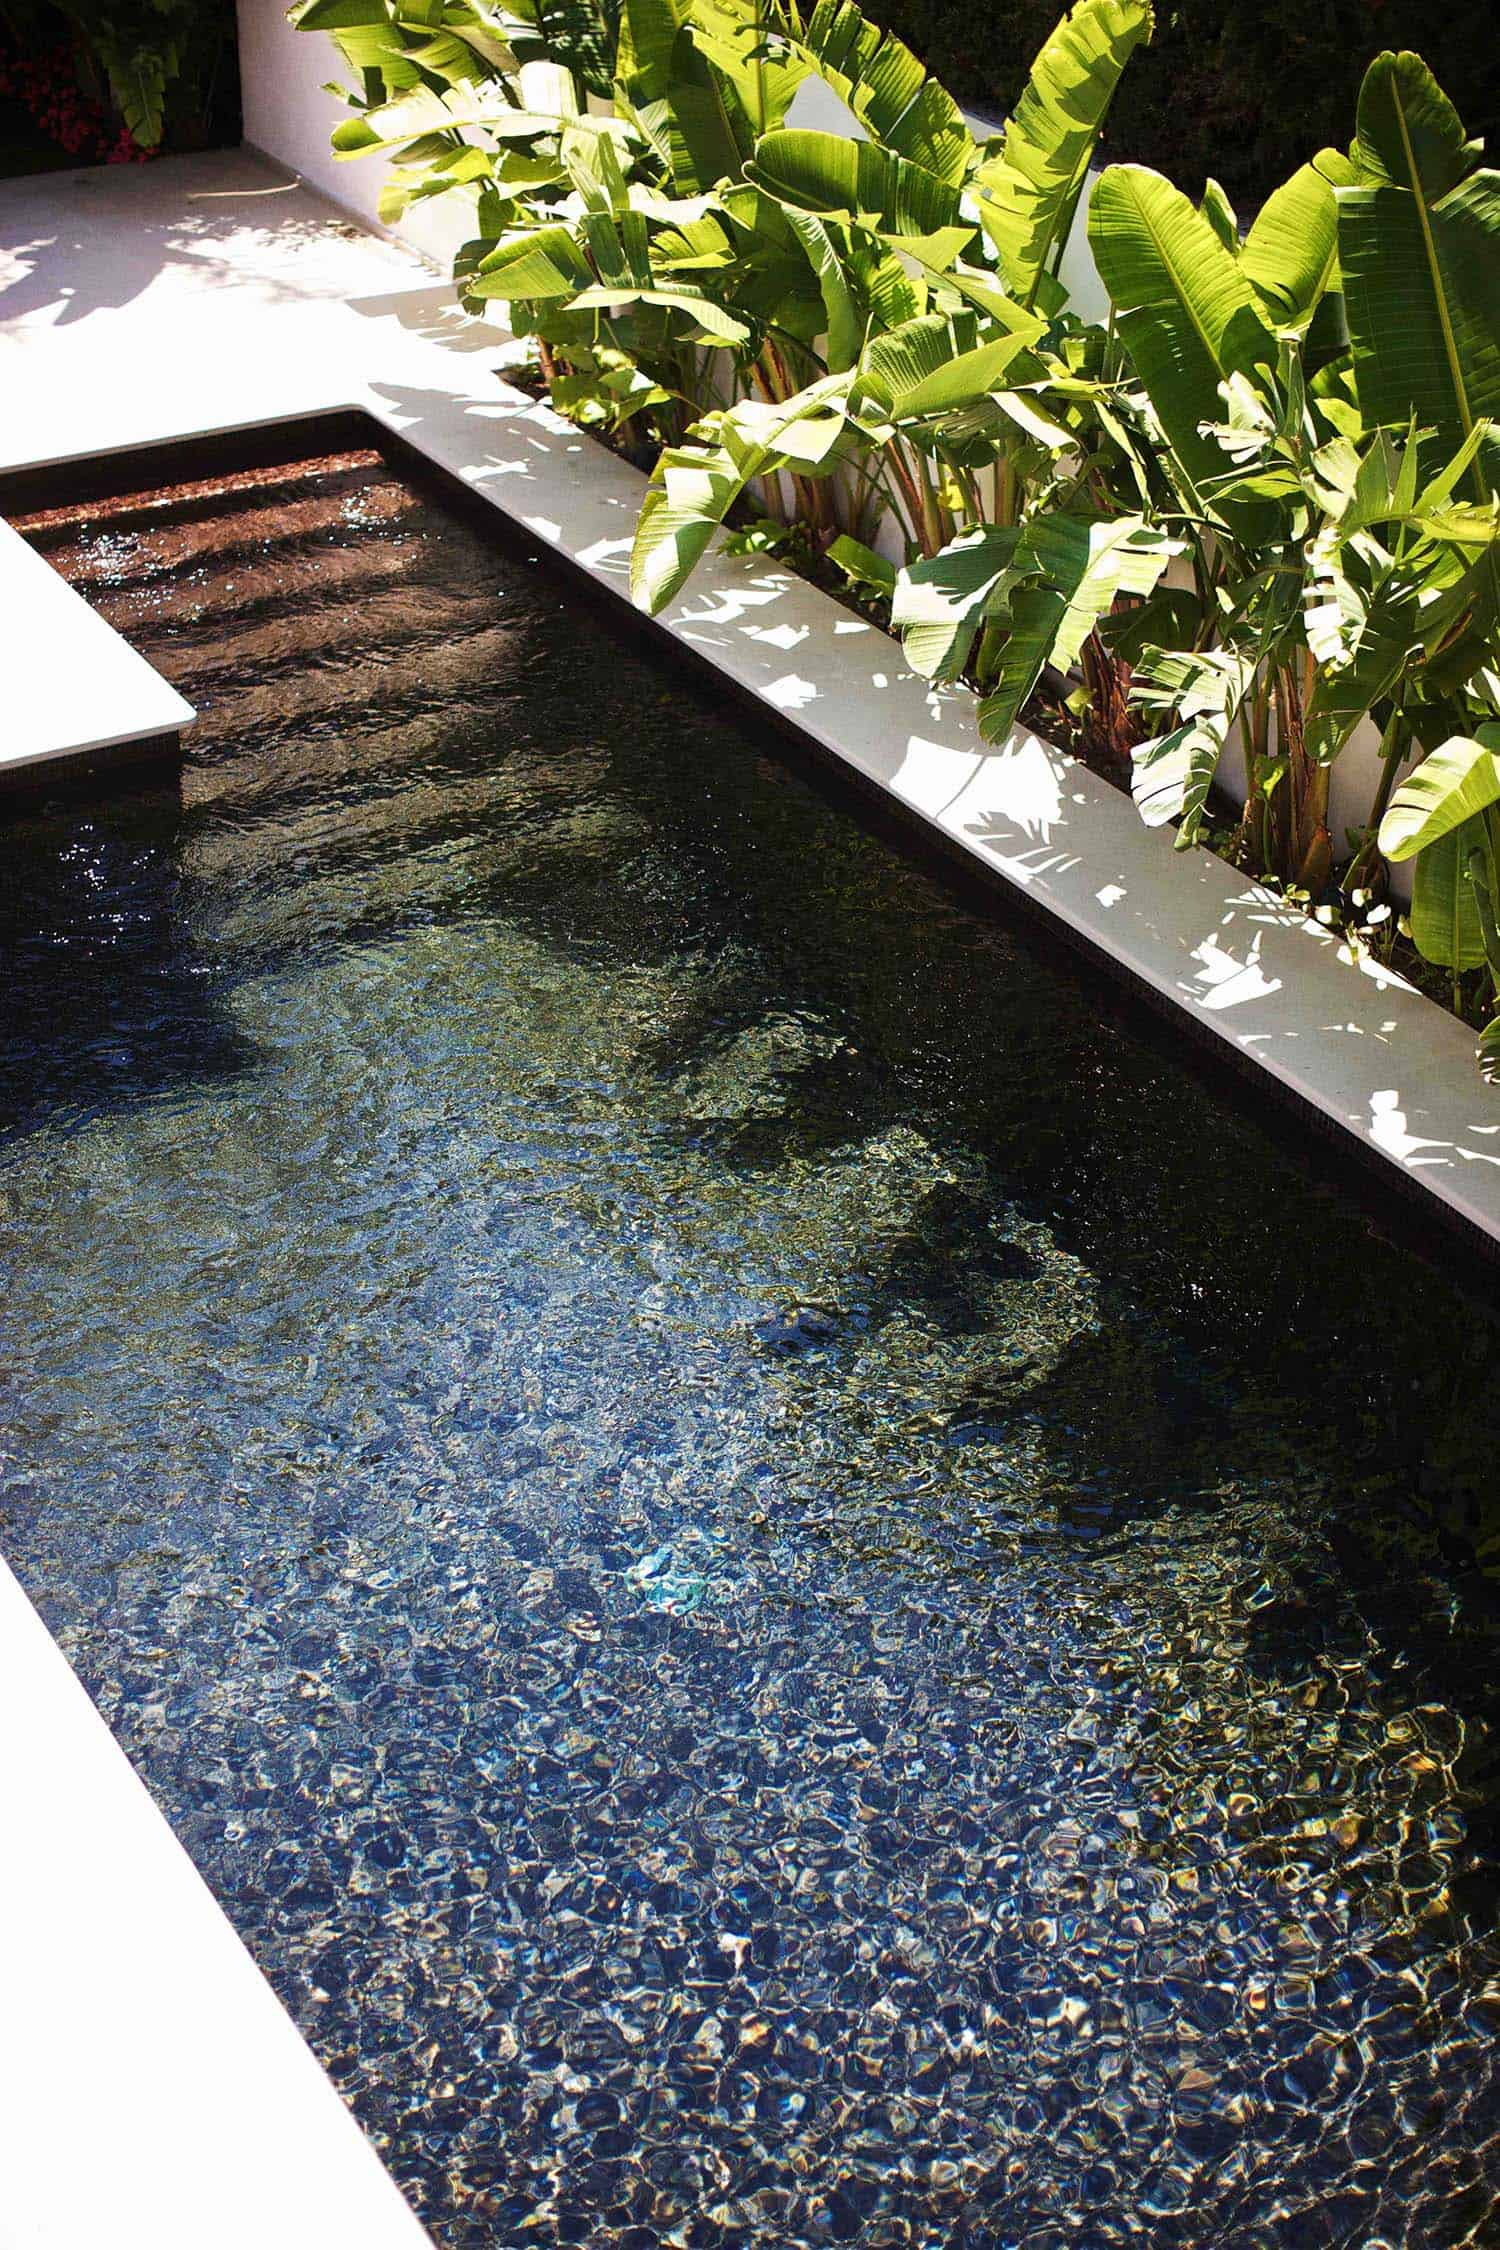 28 Refreshing Plunge Pools That Are Downright Dreamy